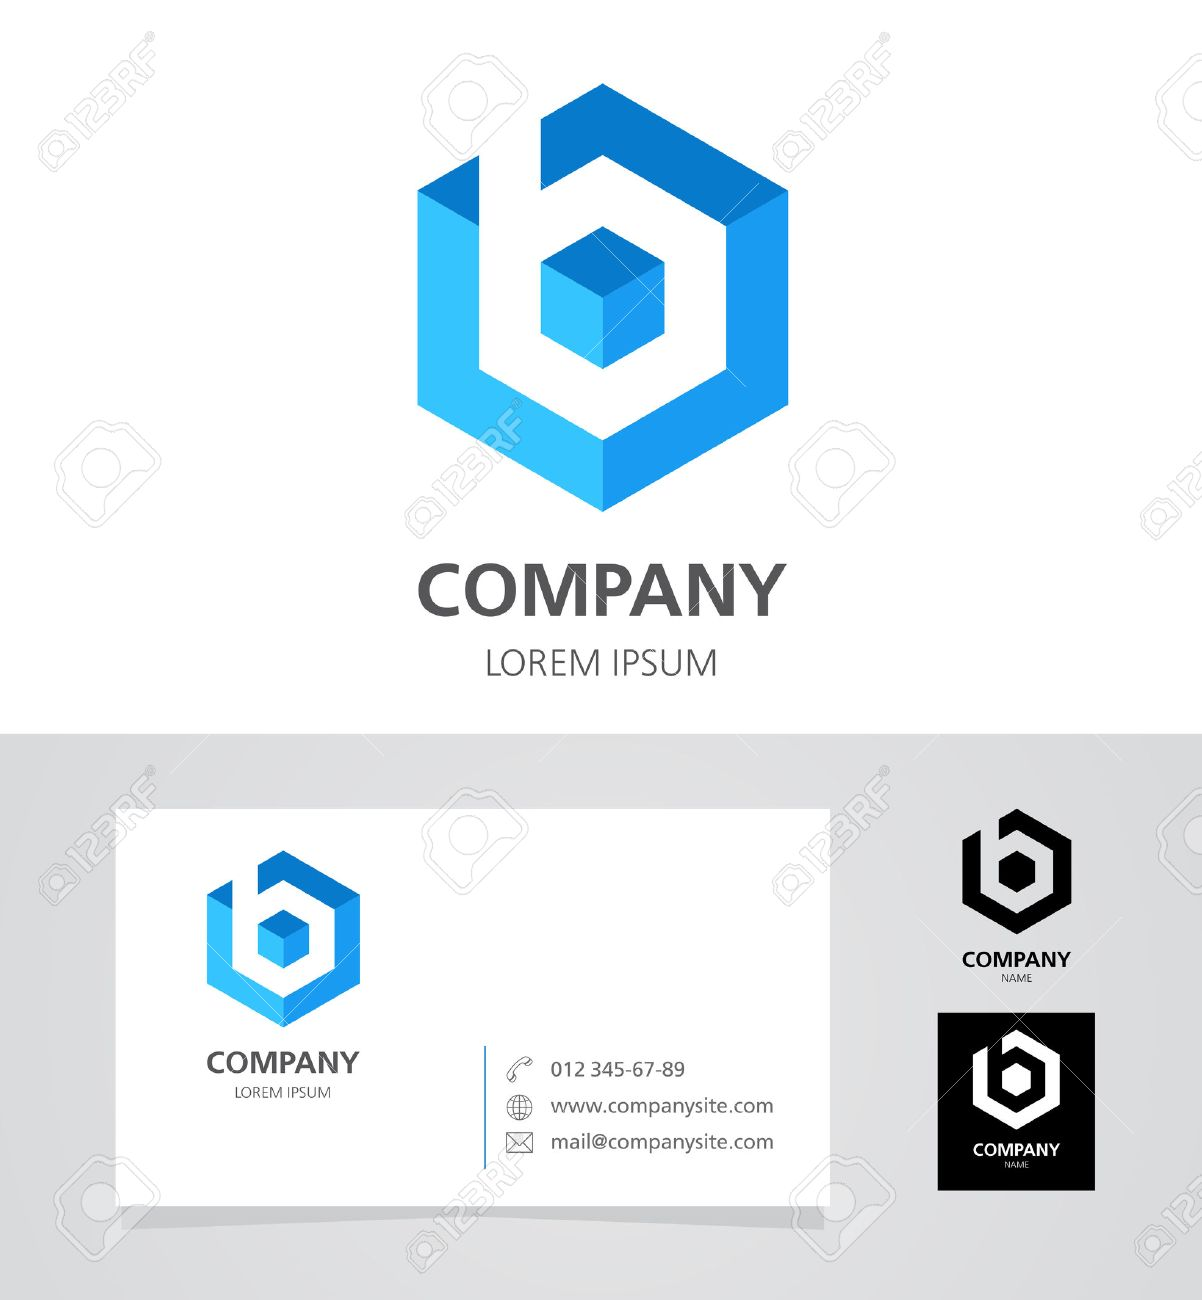 Letter B - Logo Design Element With Business Card - Illustration ...